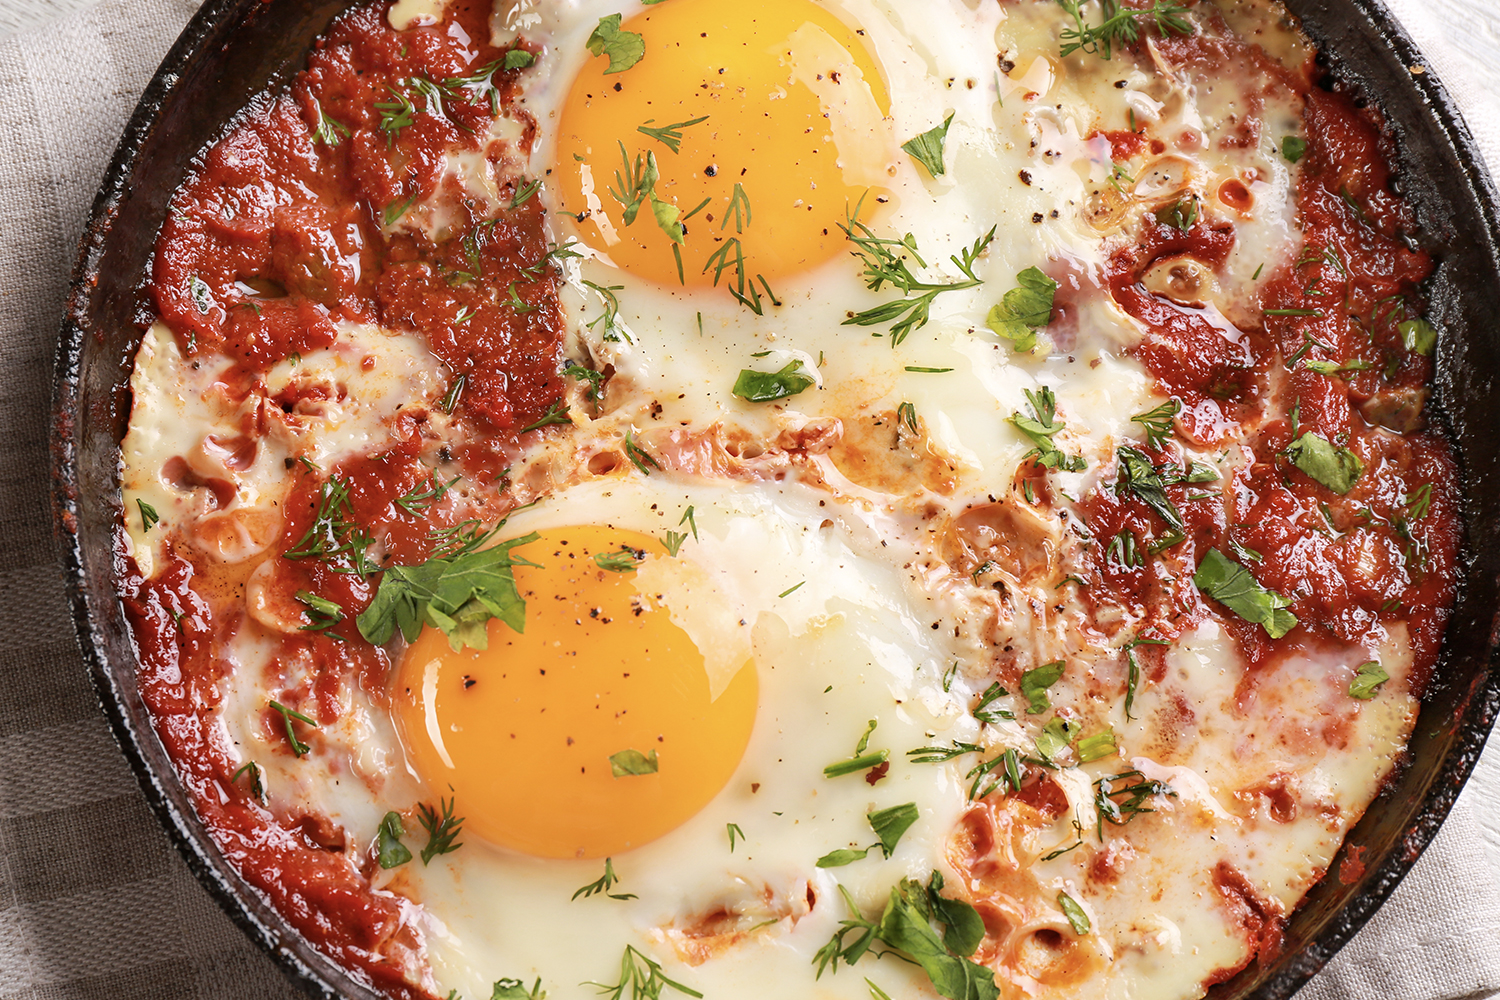 Eggs in Purgatory - Overhead view of dish